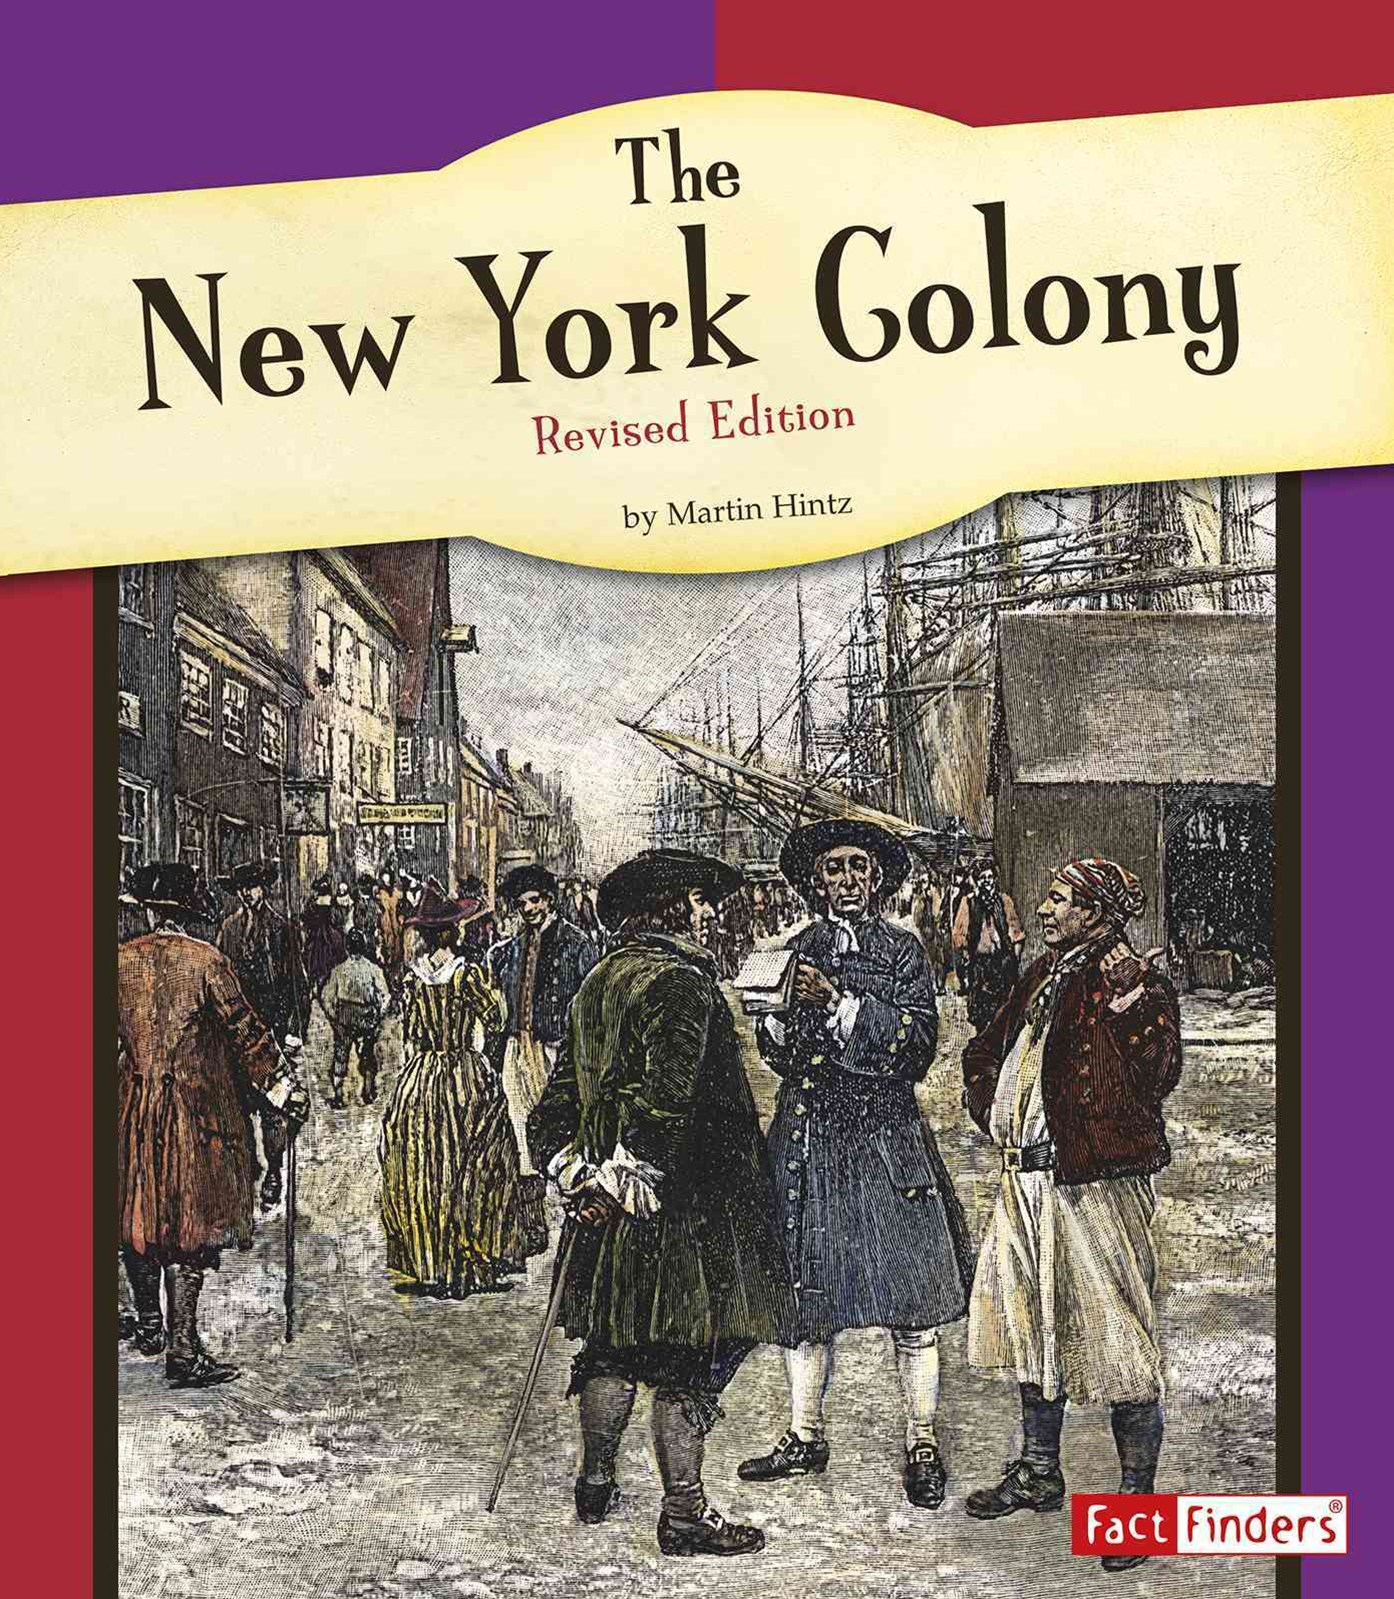 The New York Colony